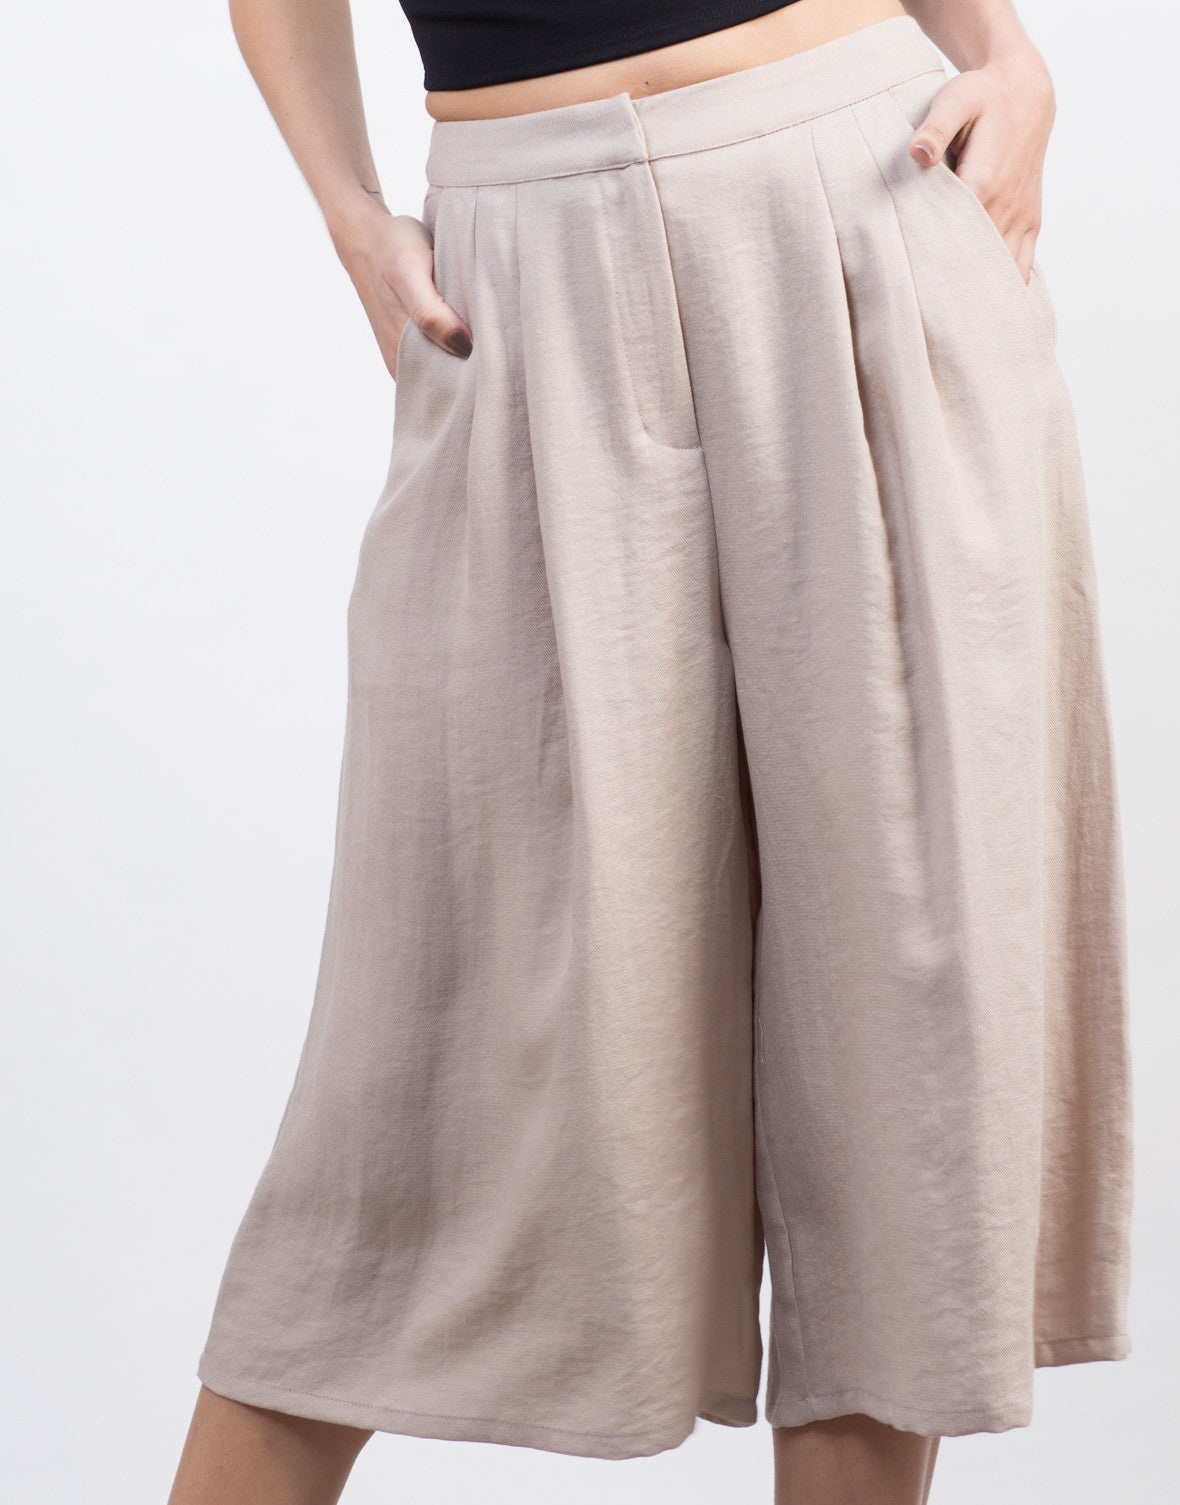 Detail of Linen Culotte Pants